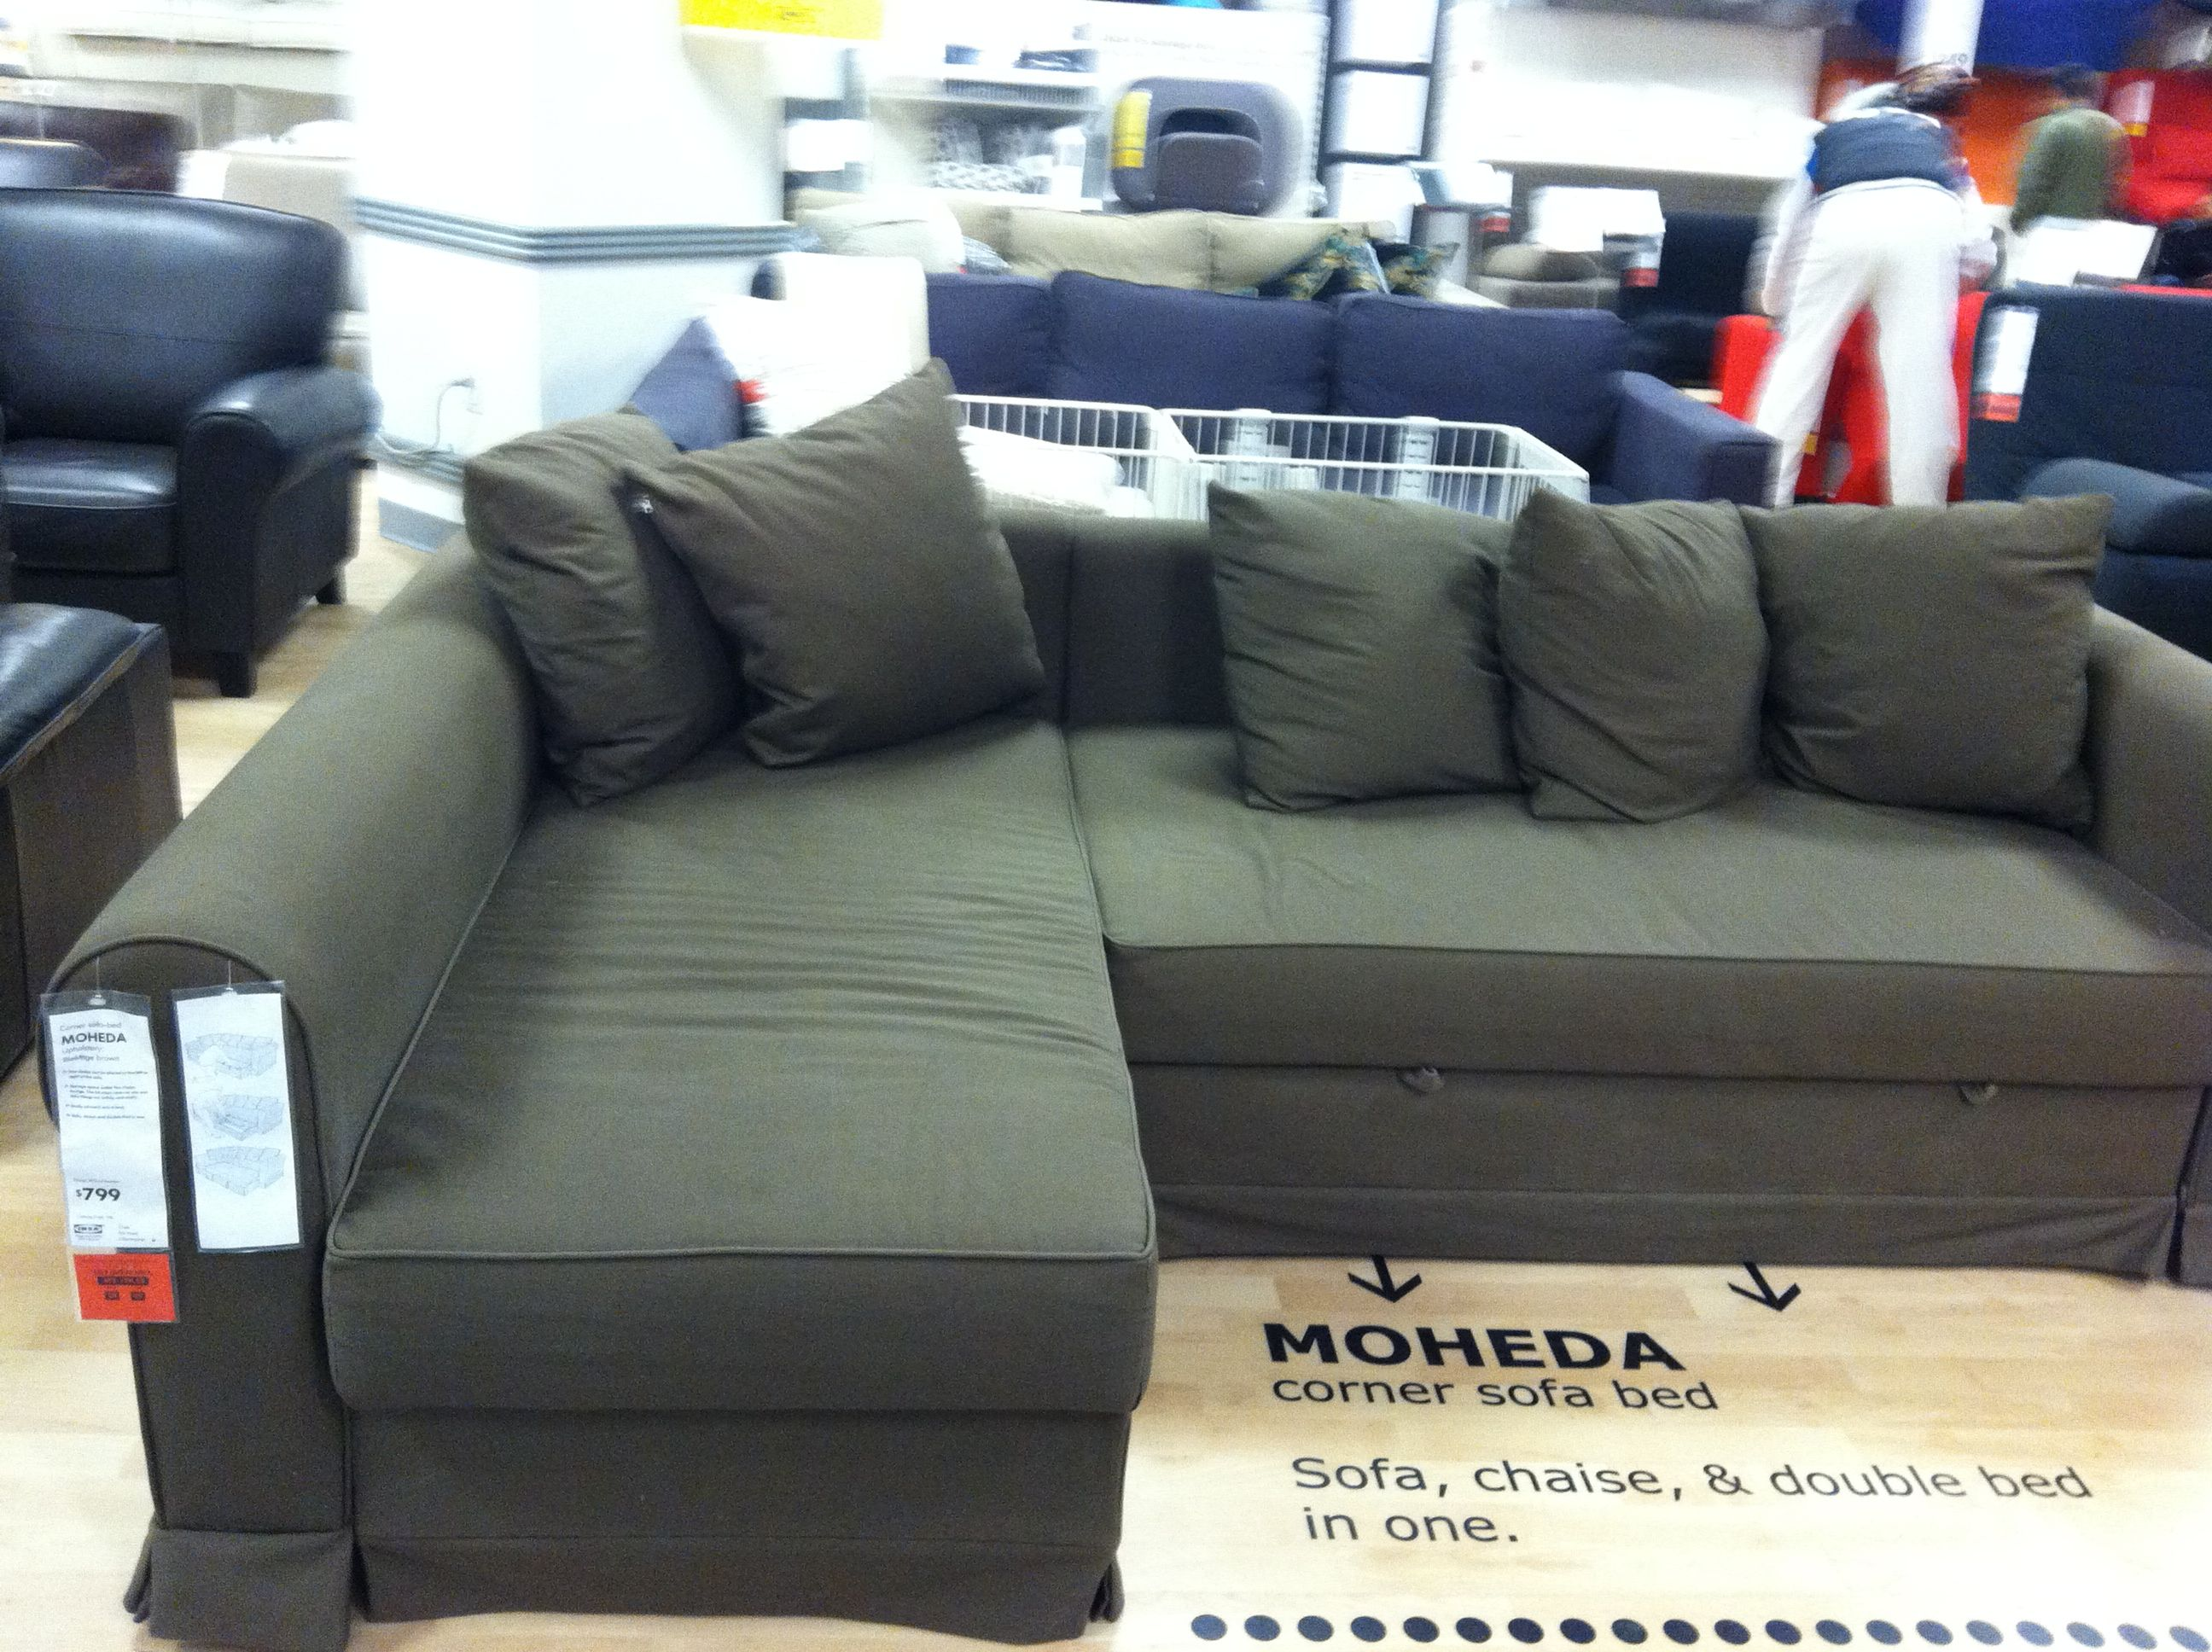 From Ikea classy green sectional Corner sofa bed